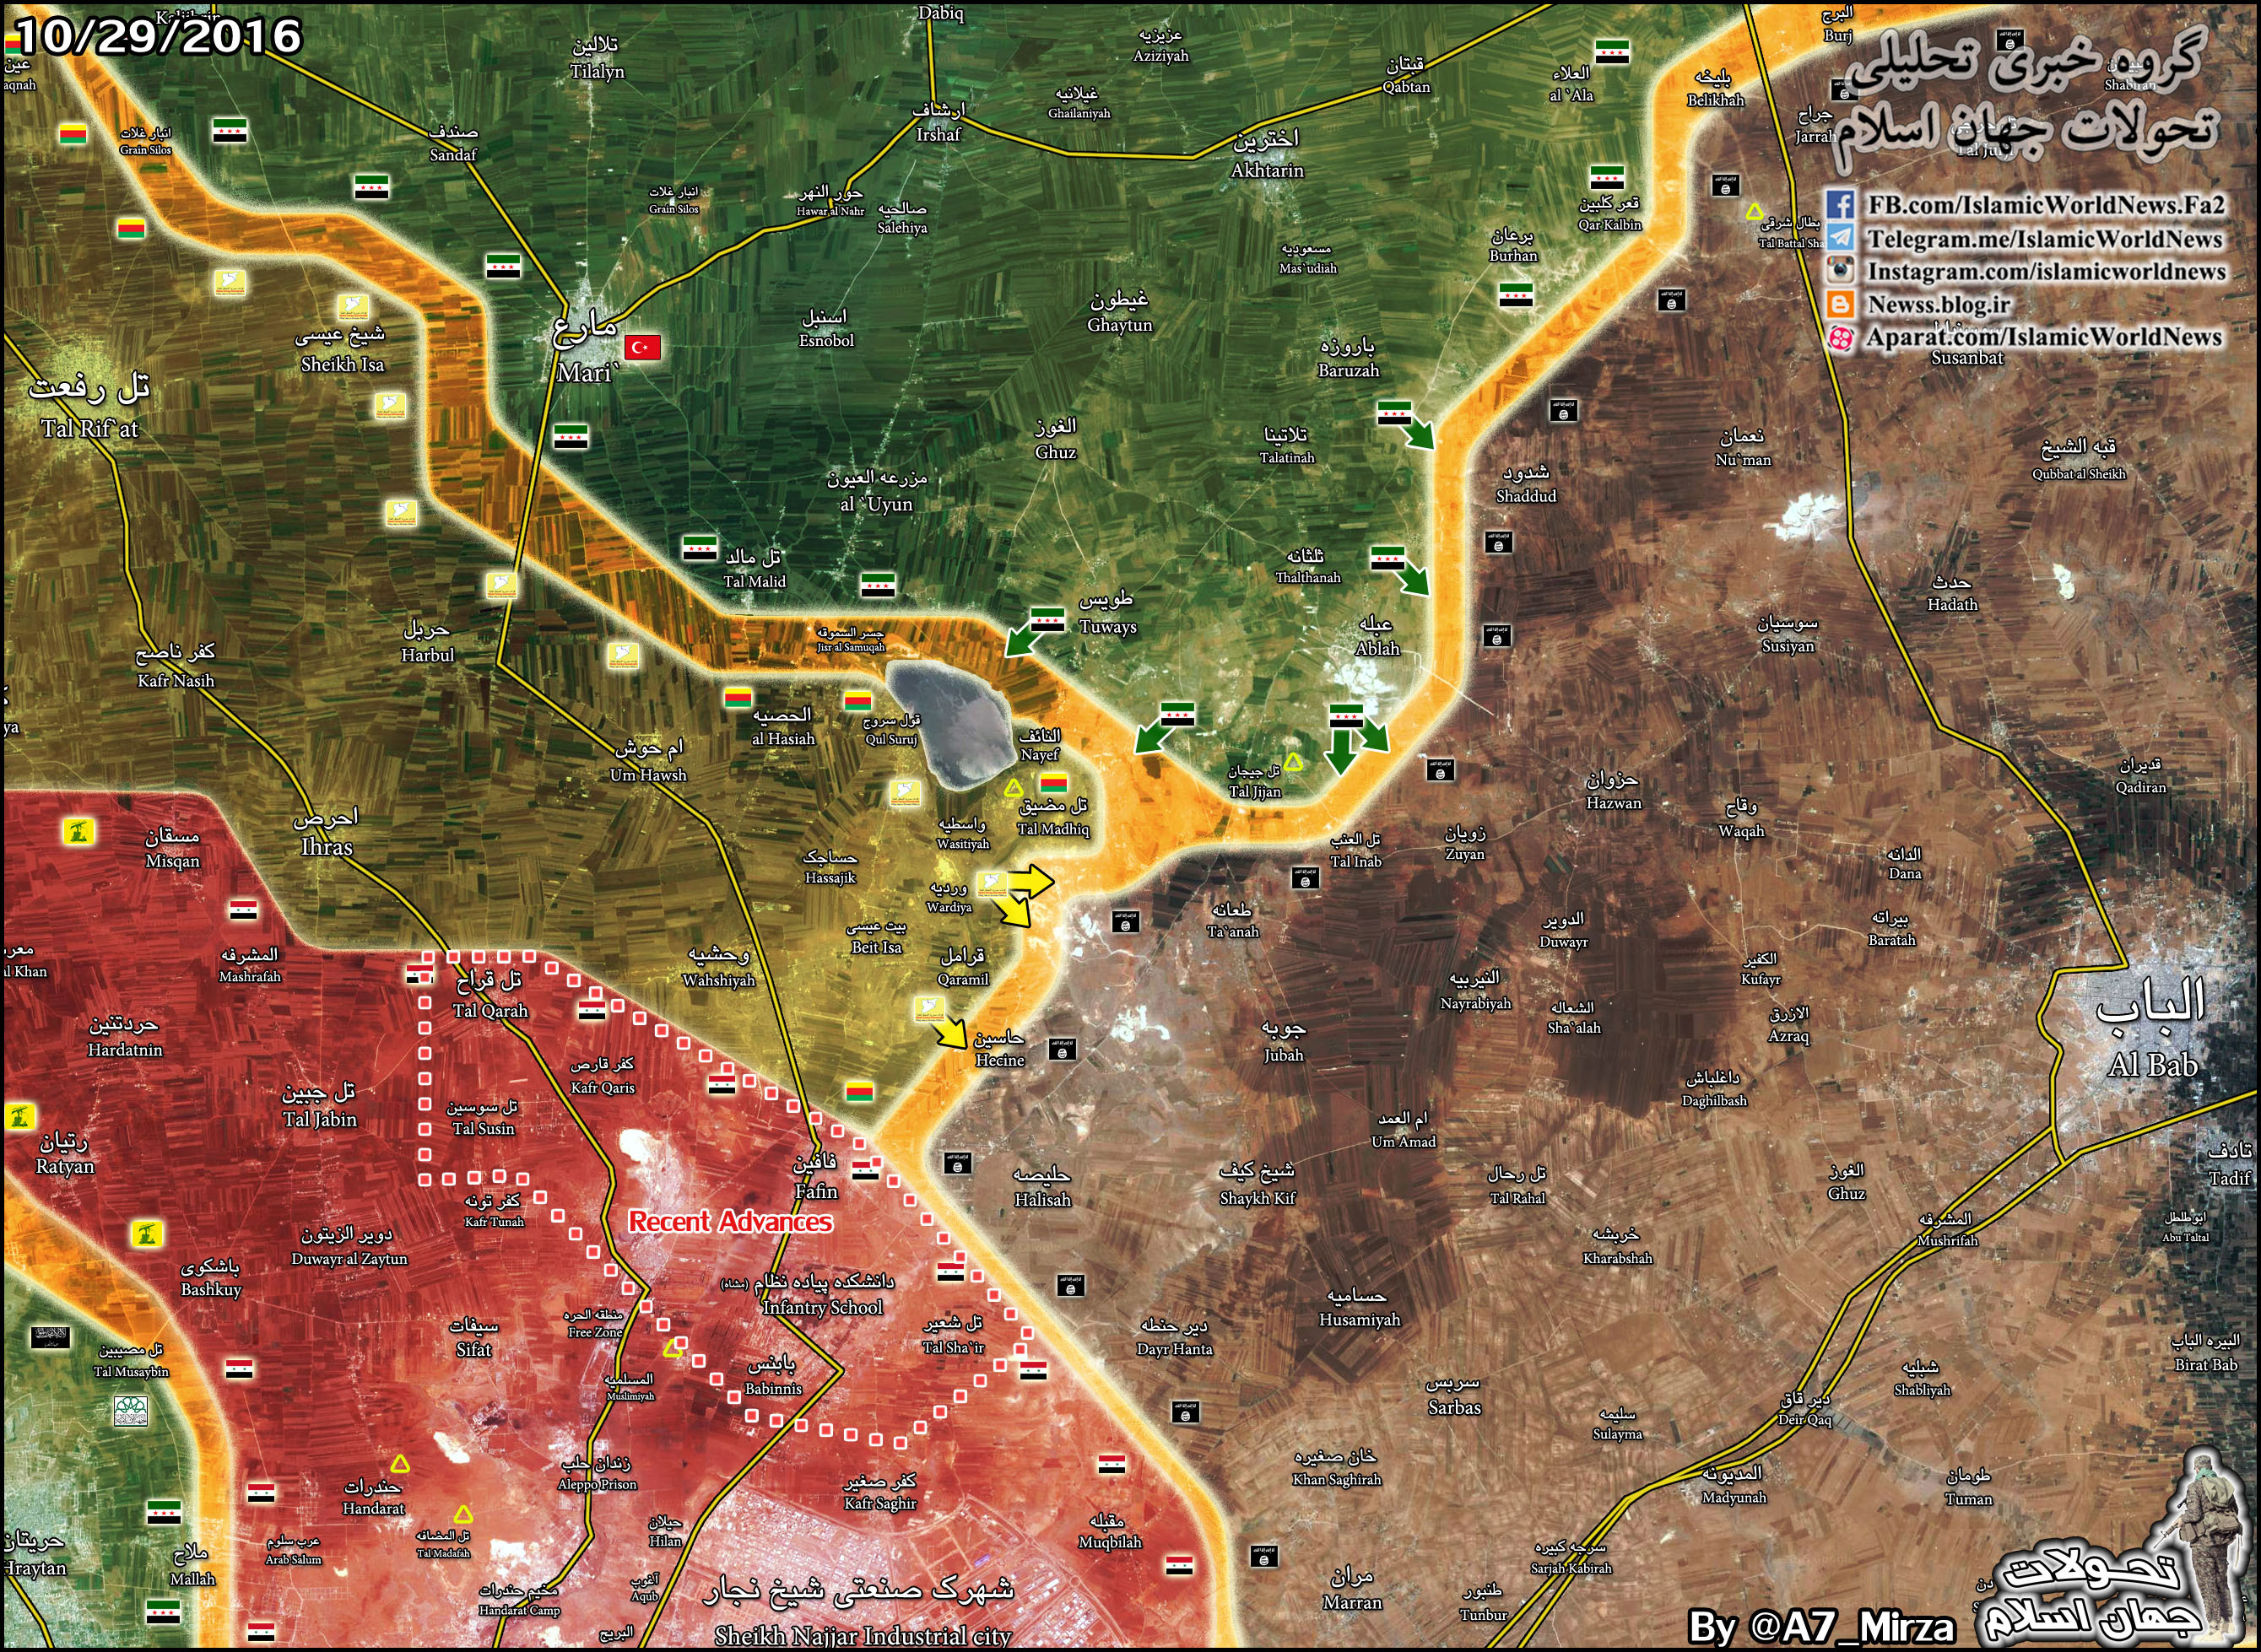 Kurdish YPG Prevents Possibility of FSA's Attack on Syrian Army in Notheastern Aleppo